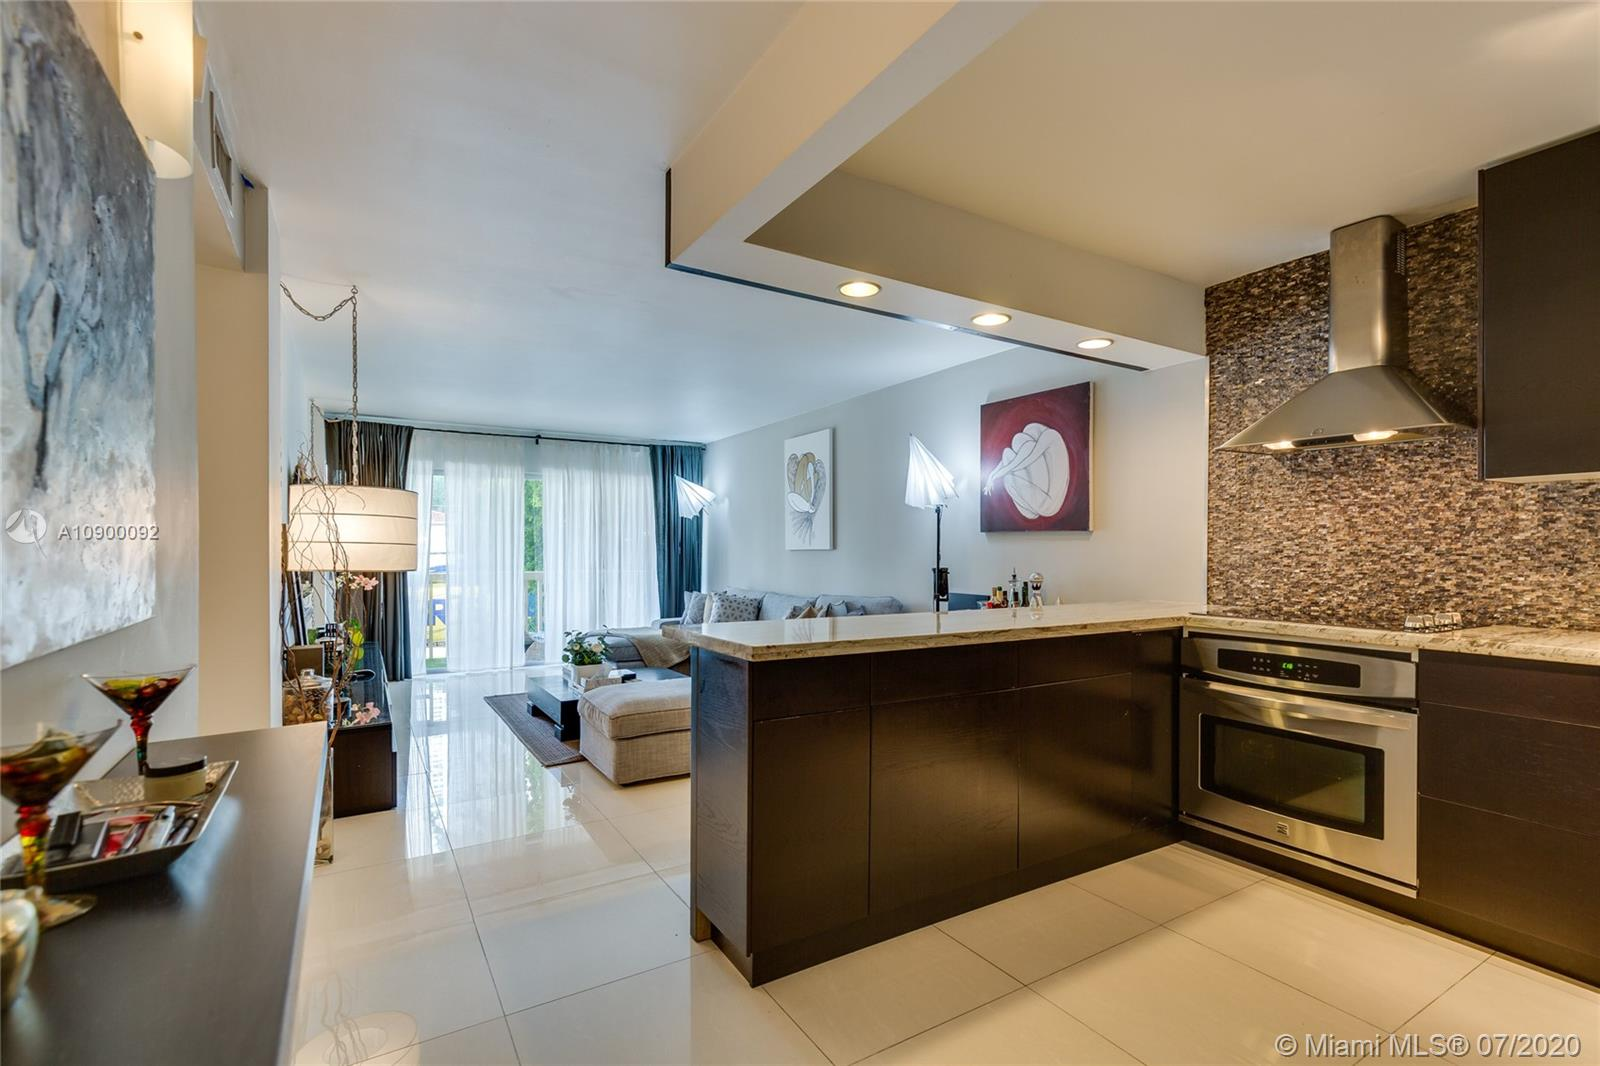 600 NE 25th St Unit 21  For Sale A10900092, FL